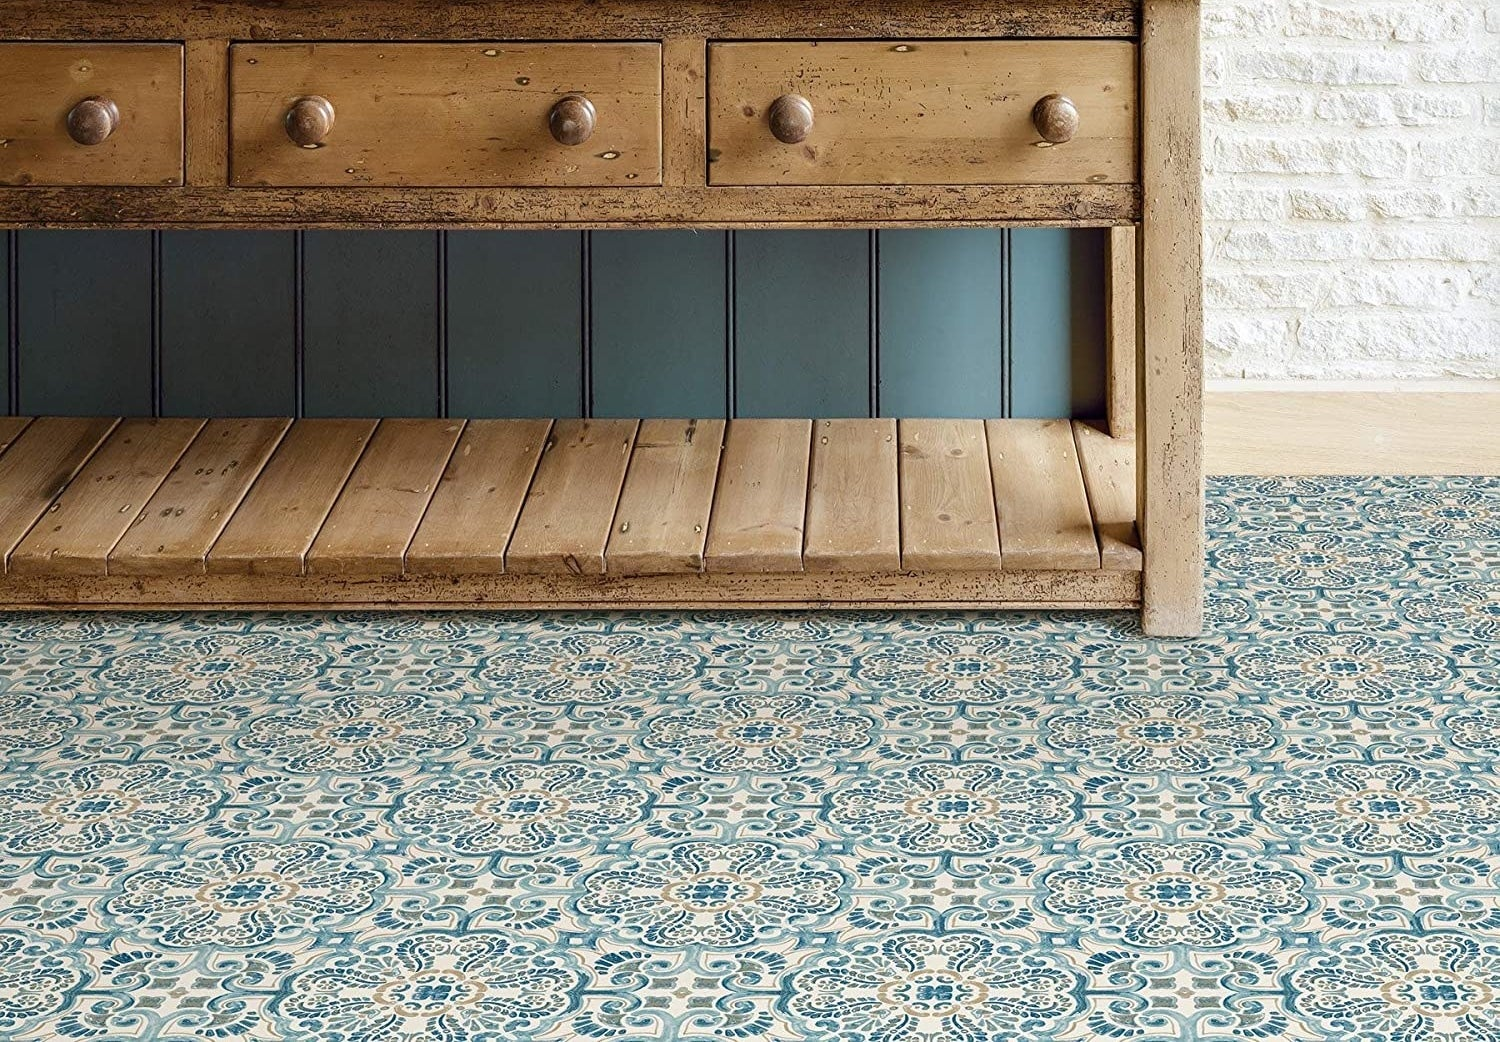 A wooden credenza on a funky patterned tiled floor